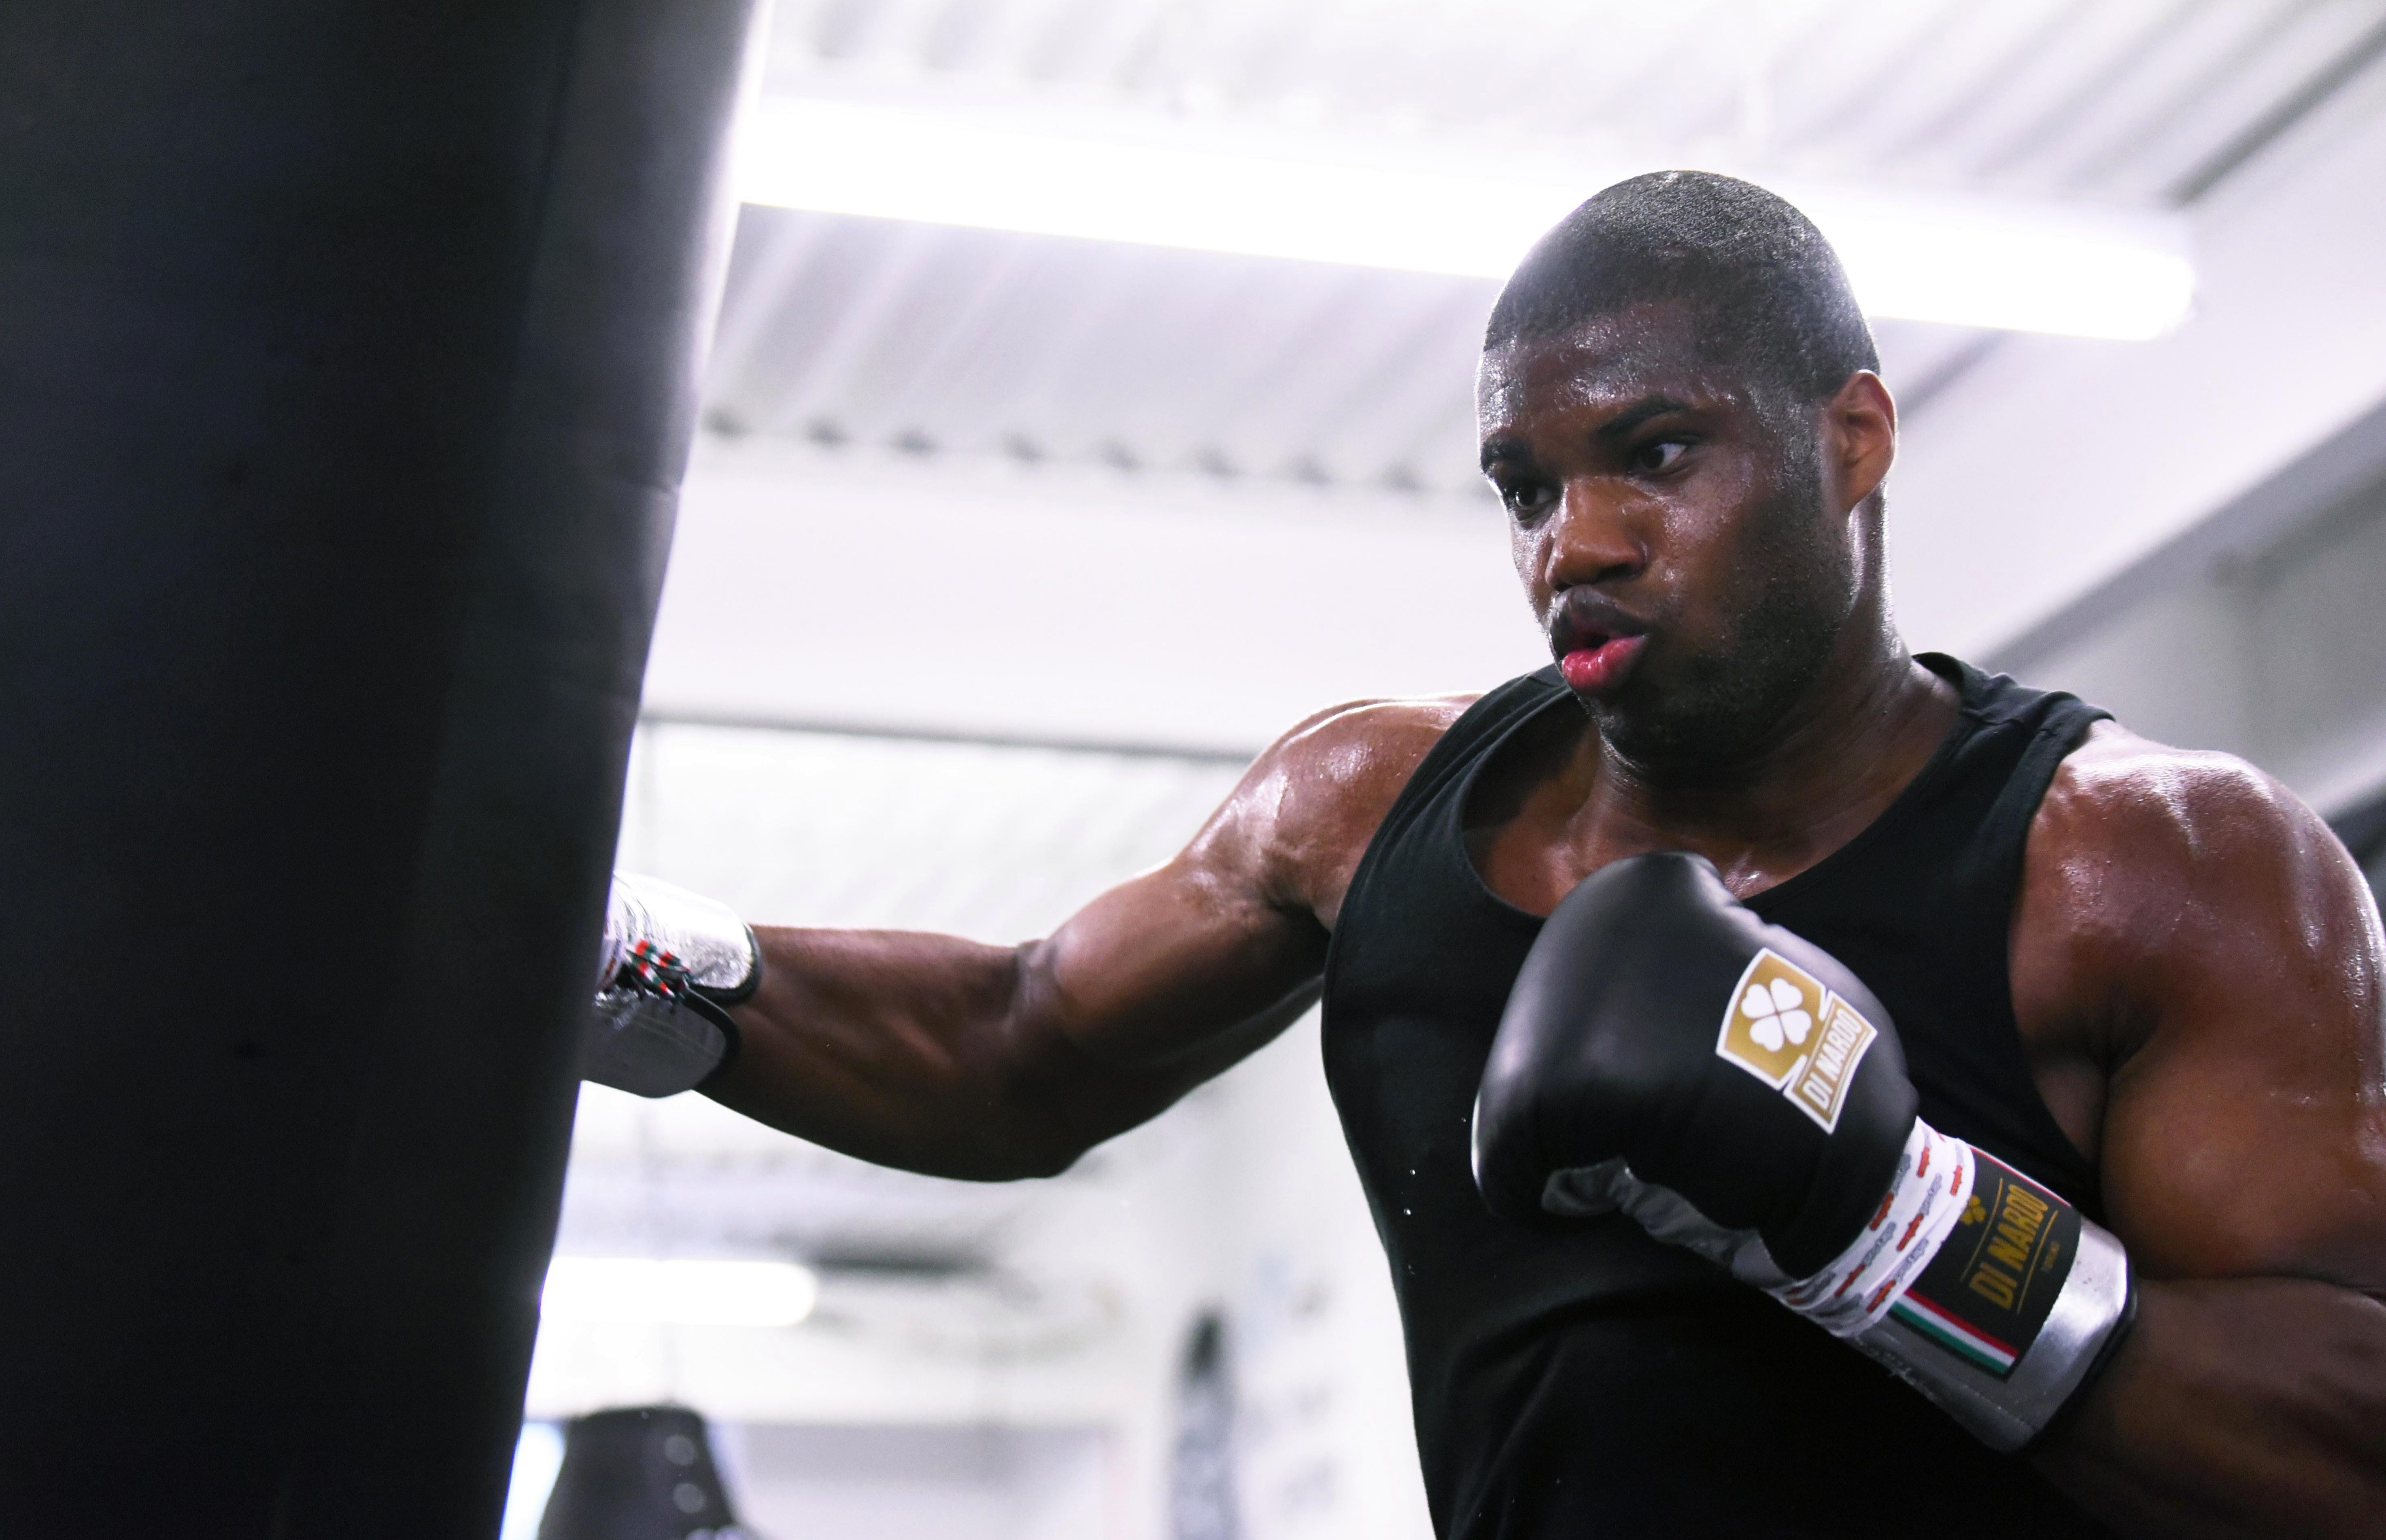 Dubois is one of the most promising heavyweights in the division